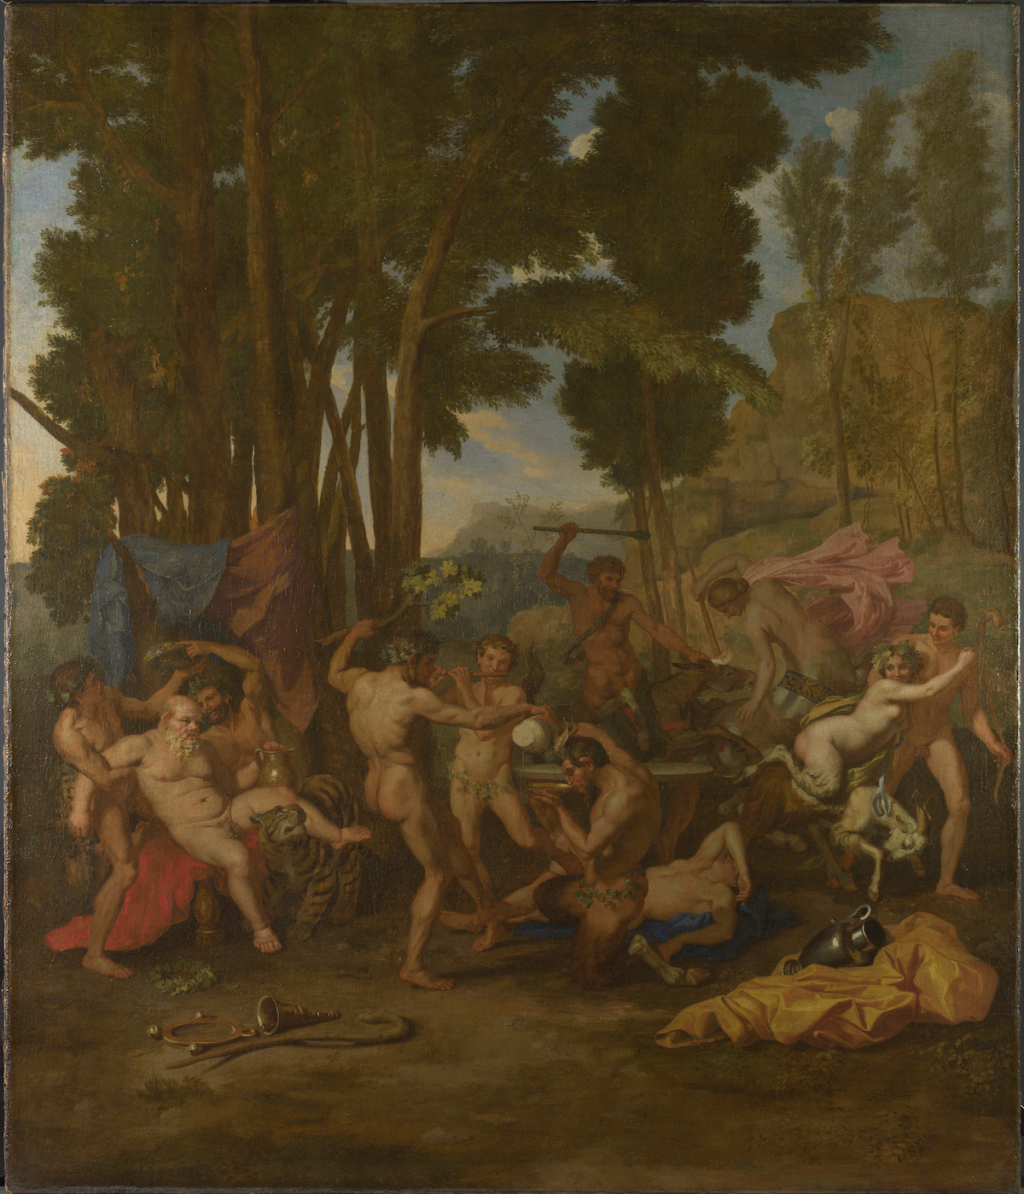 Nicolas Poussin Painting in London, Long Believed to Be a Copy, Gets Reattributed